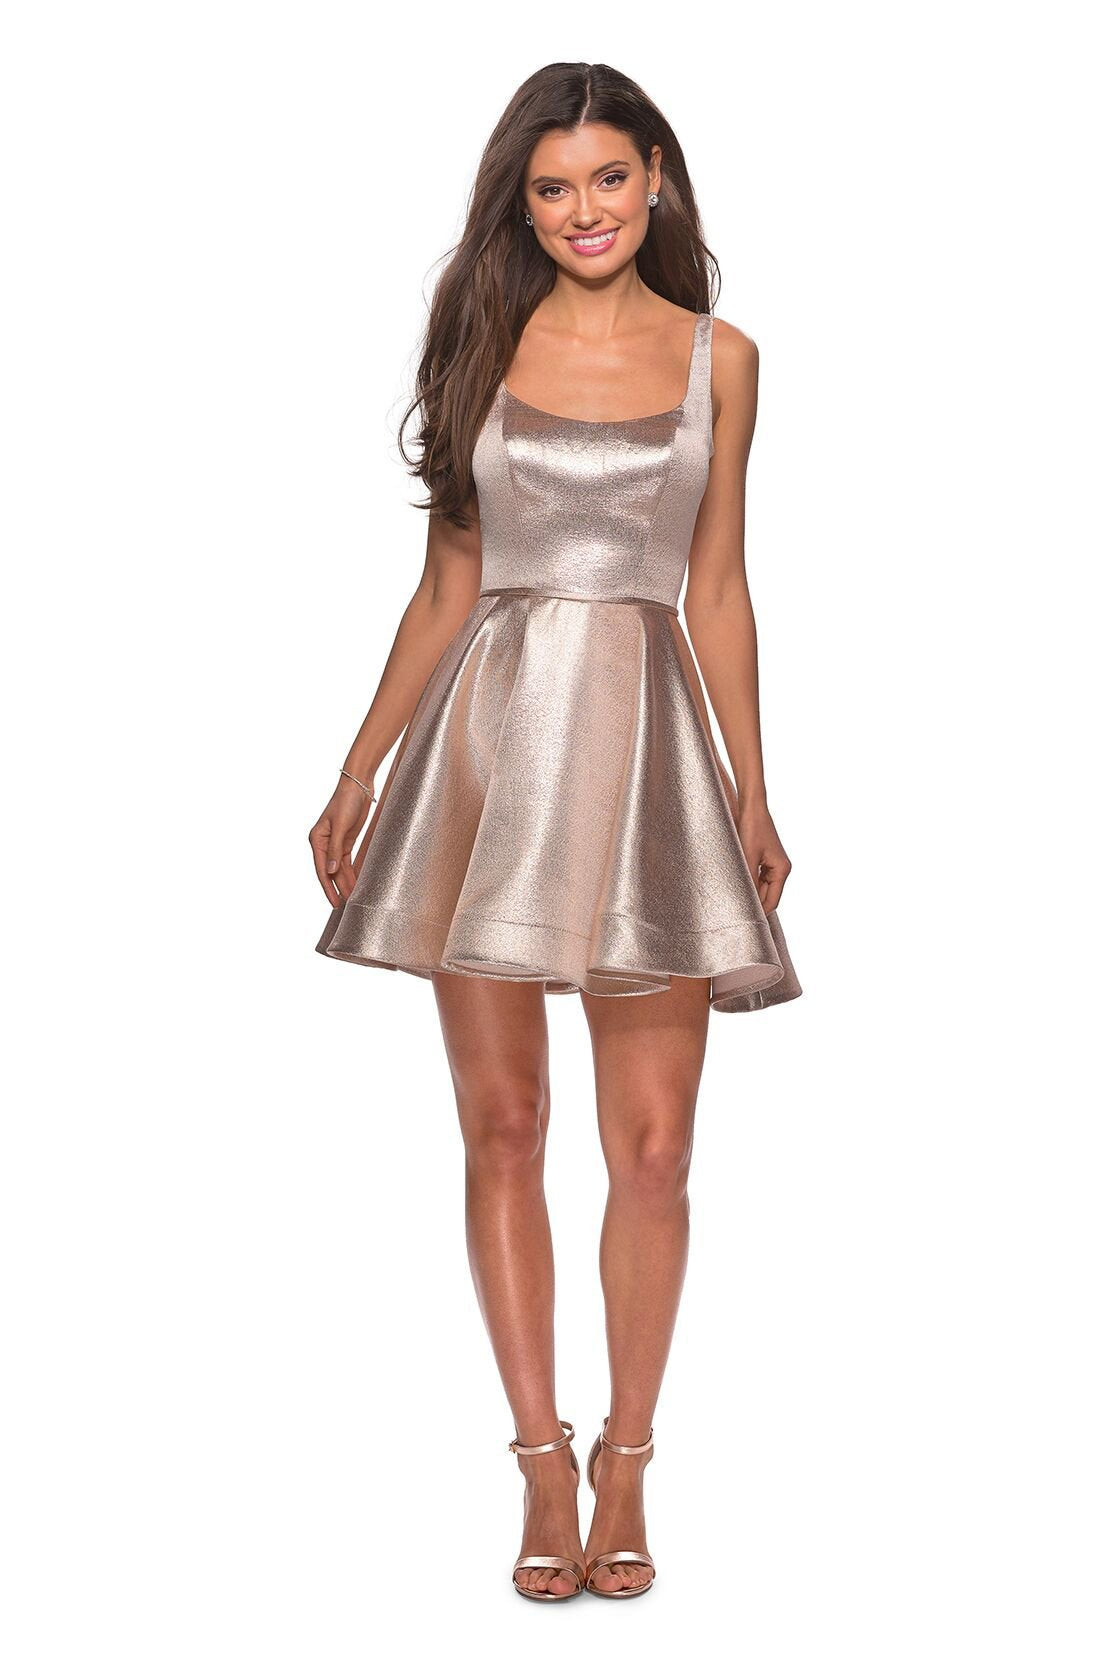 La Femme - Sleeveless Scoop Neck A-Line Metallic Cocktail Dress 28181SC In Pink and Gold